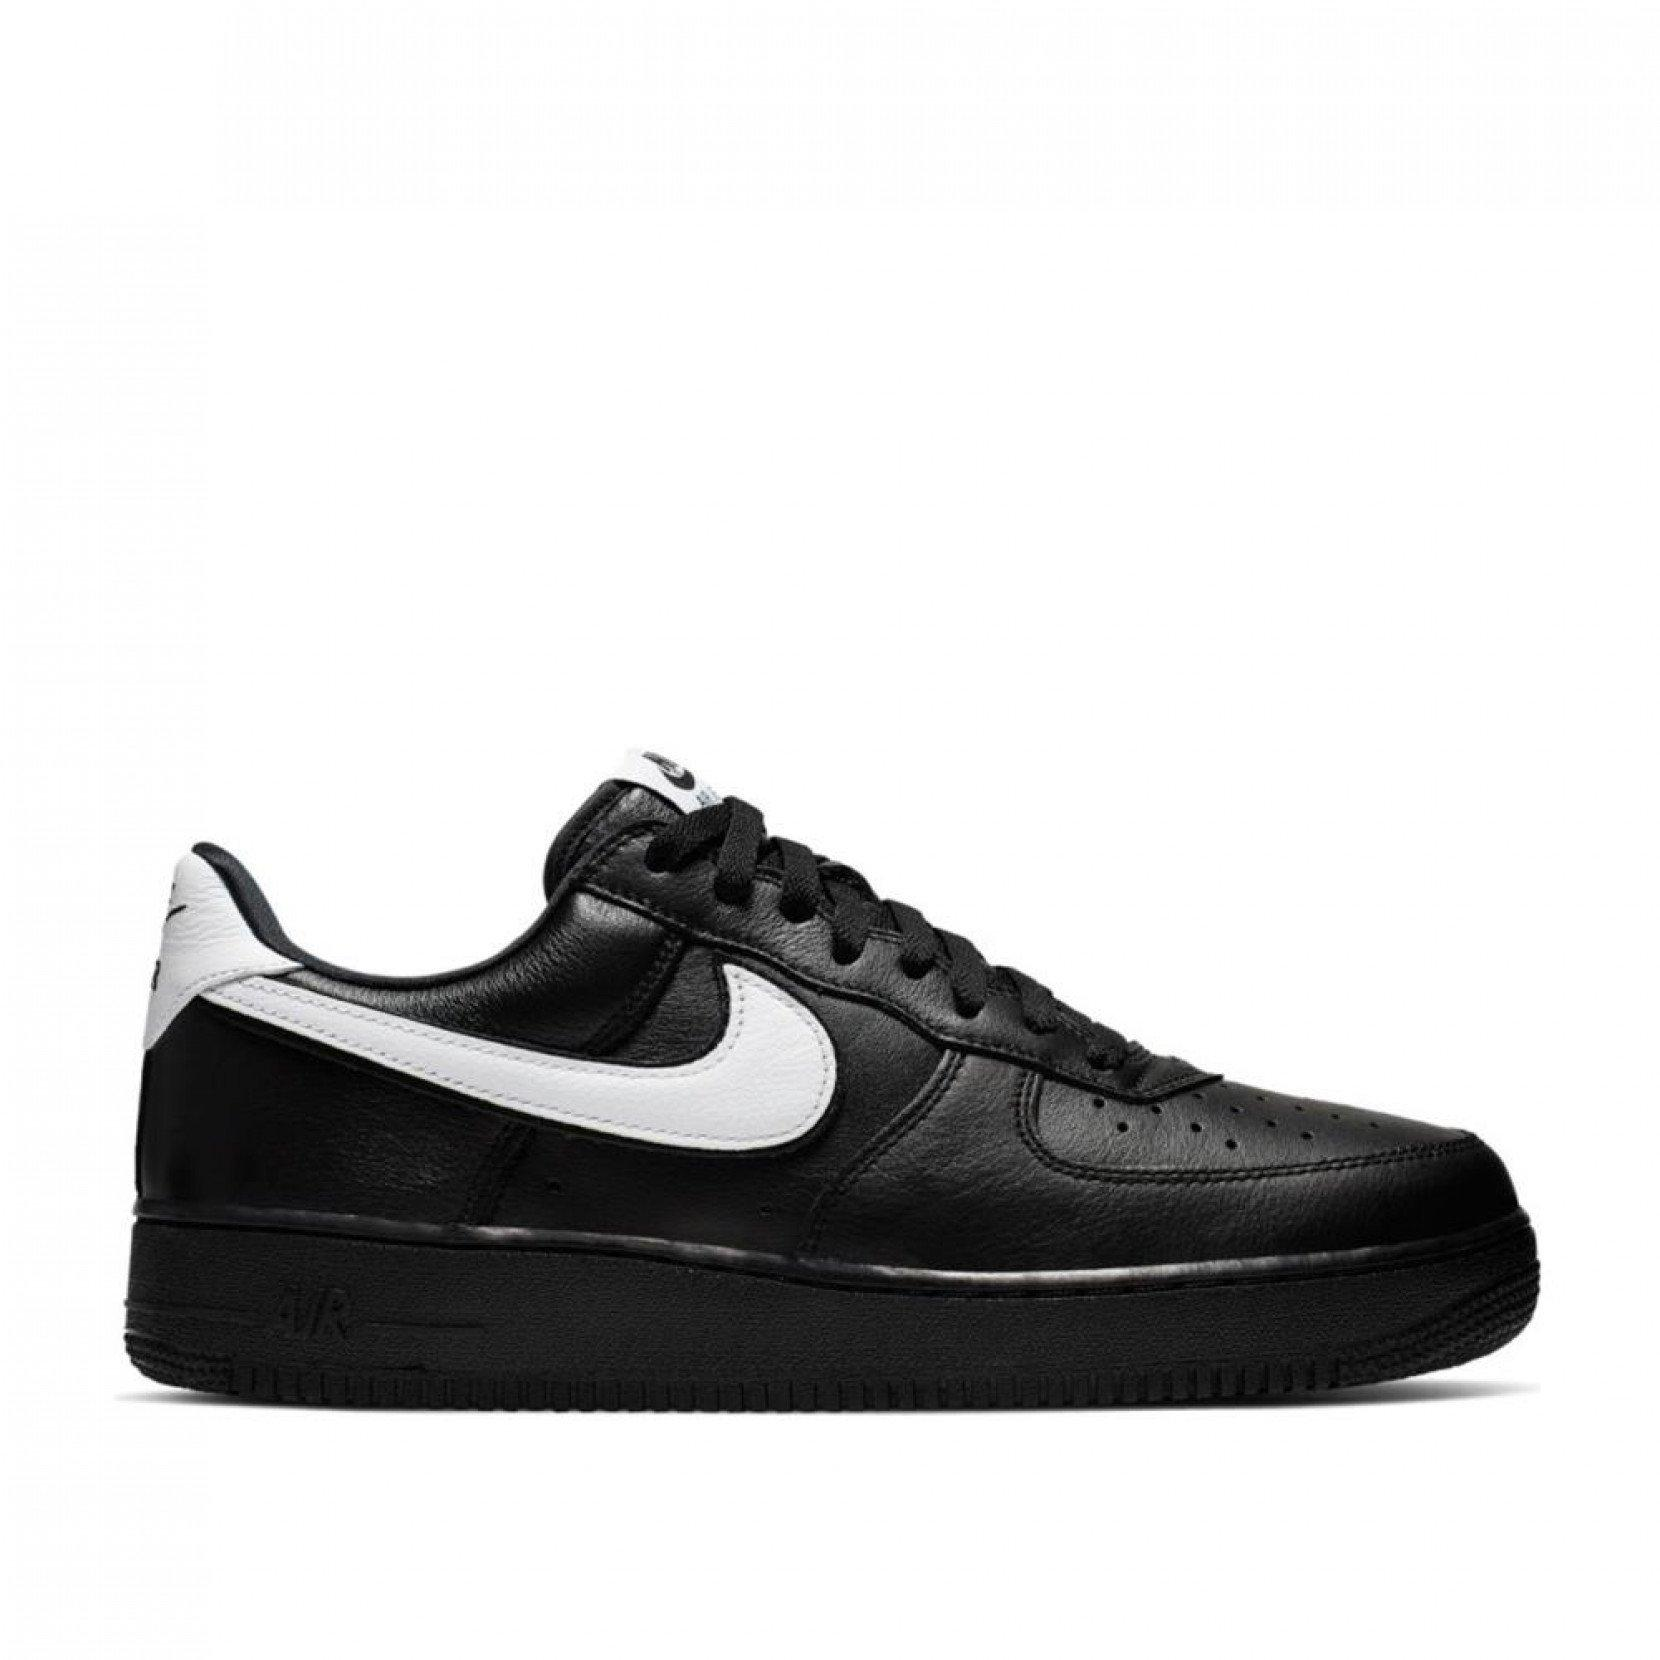 Nike Leather Air Force 1 Low Retro in Black/White (Black) for Men ...